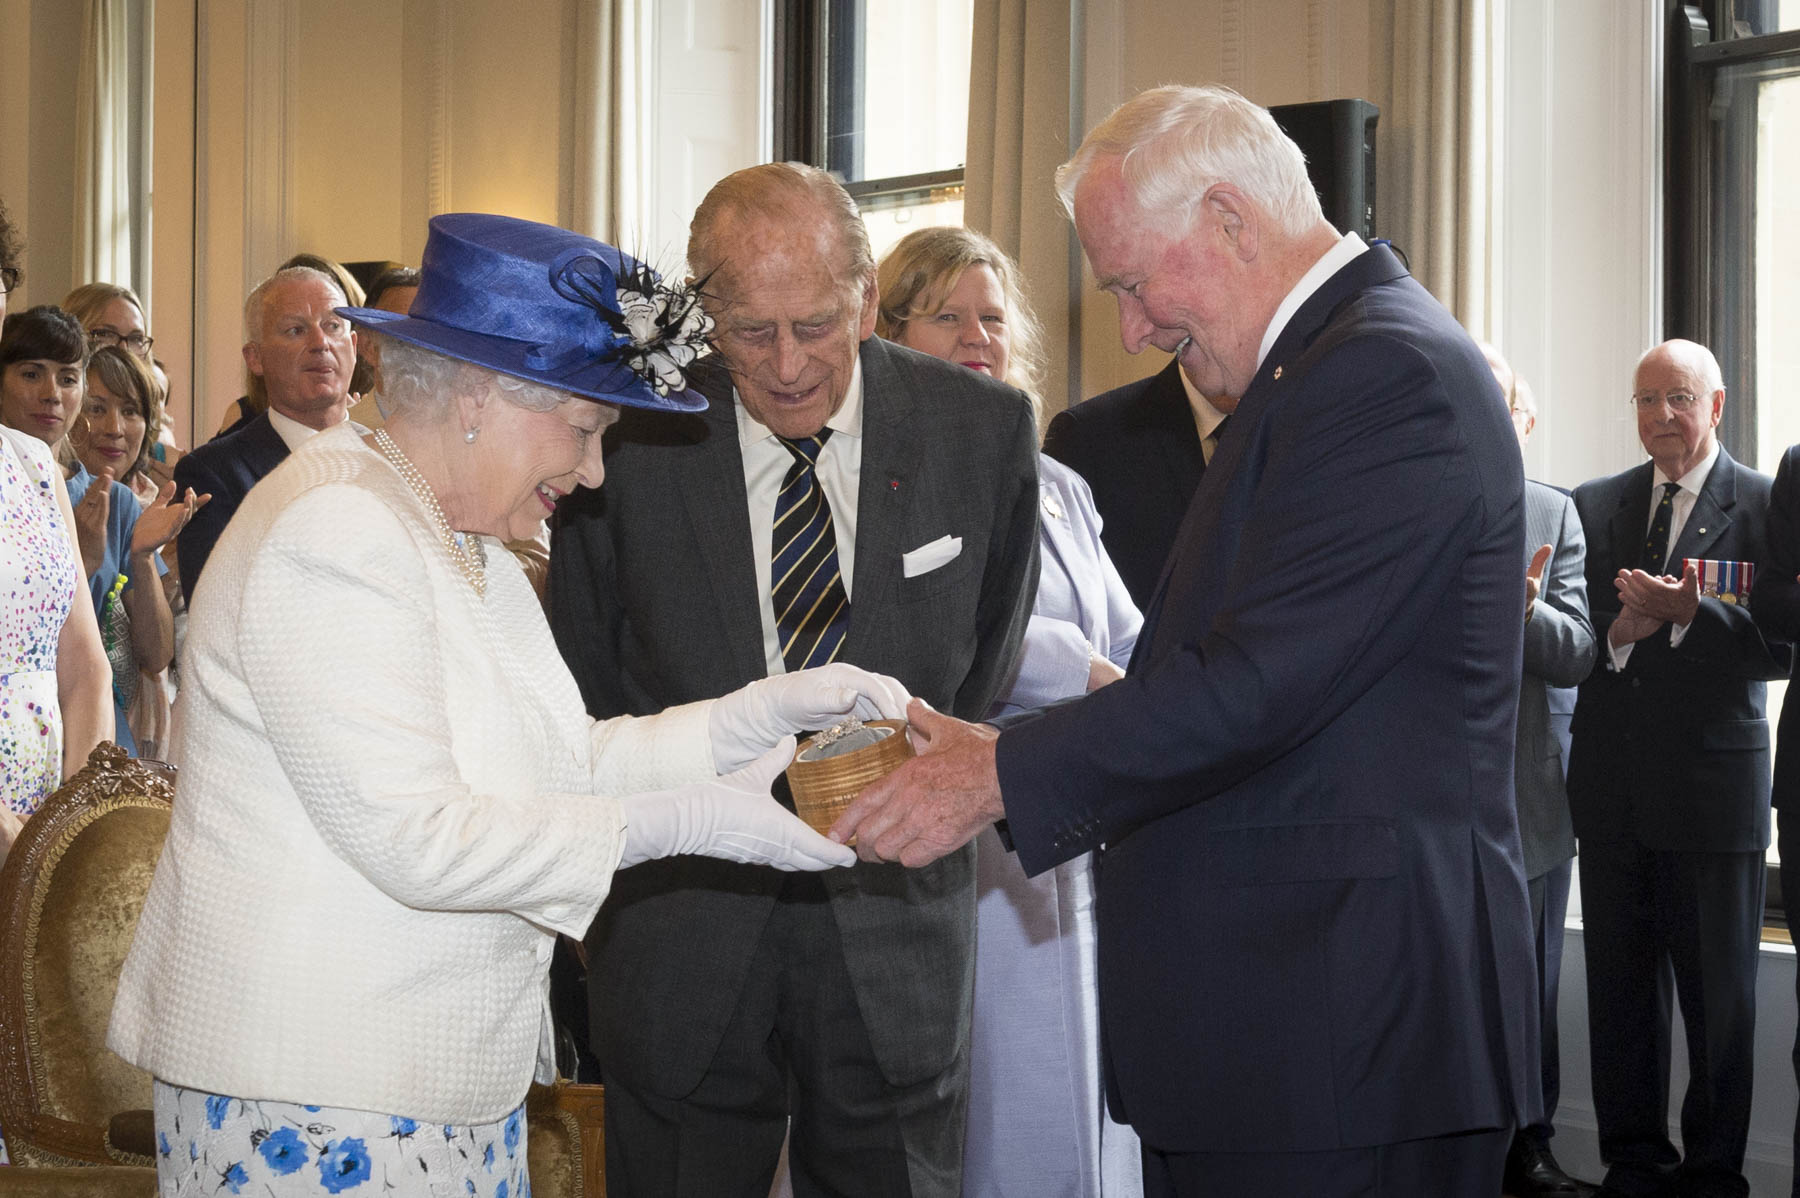 During the event, His Excellency presented Her Majesty with the Sapphire Jubilee Snowflake Brooch. The brooch celebrates The Queen's Sapphire Jubilee, marking 65 years as Canada's Sovereign.